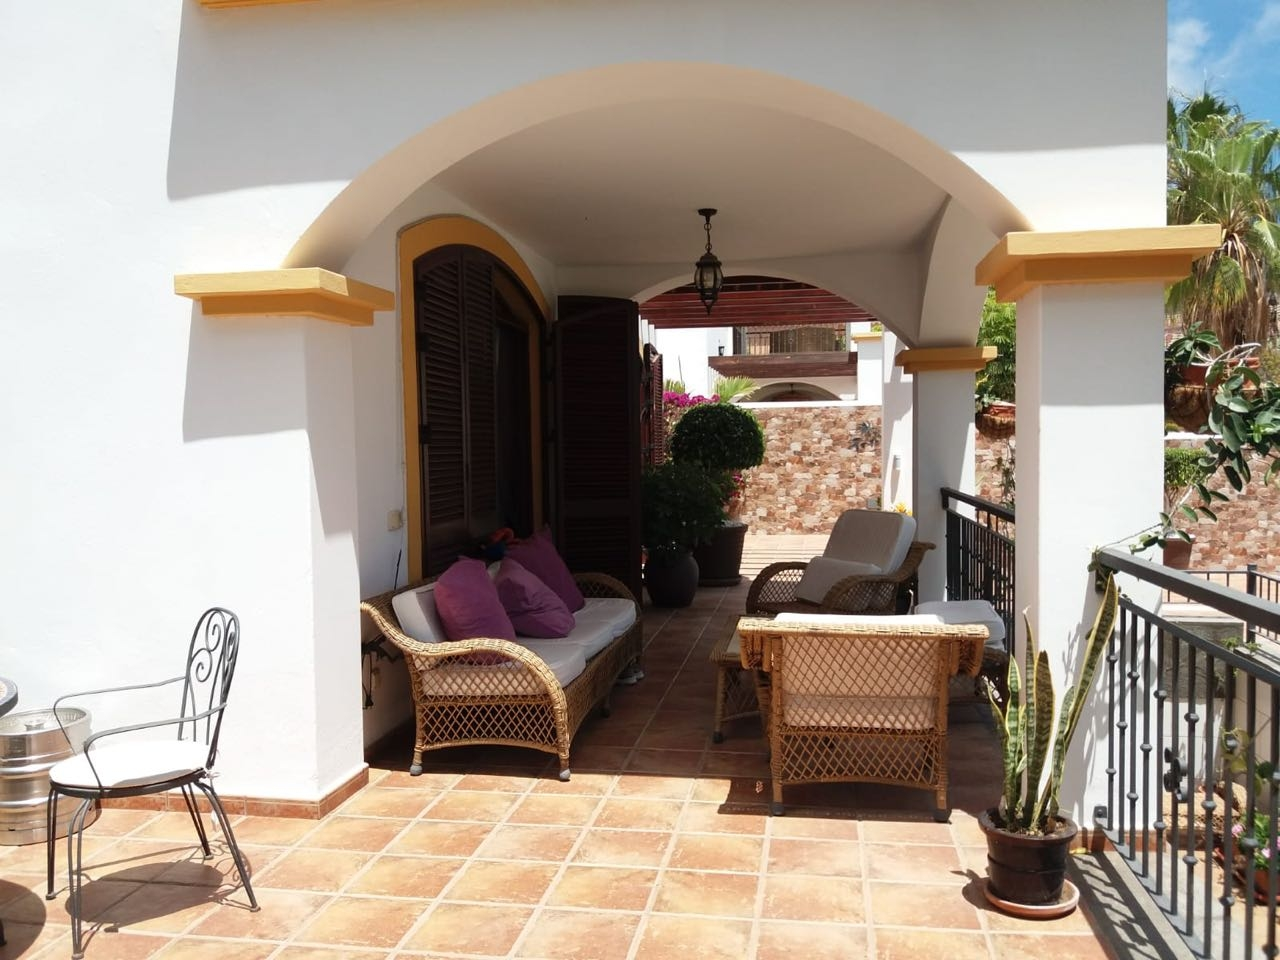 Properties for Sale in Tenerife, Canary Islands, Spain | SylkWayStar Real Estate. Luxury Villa 5 Bedrooms Madroñal. Image-24423